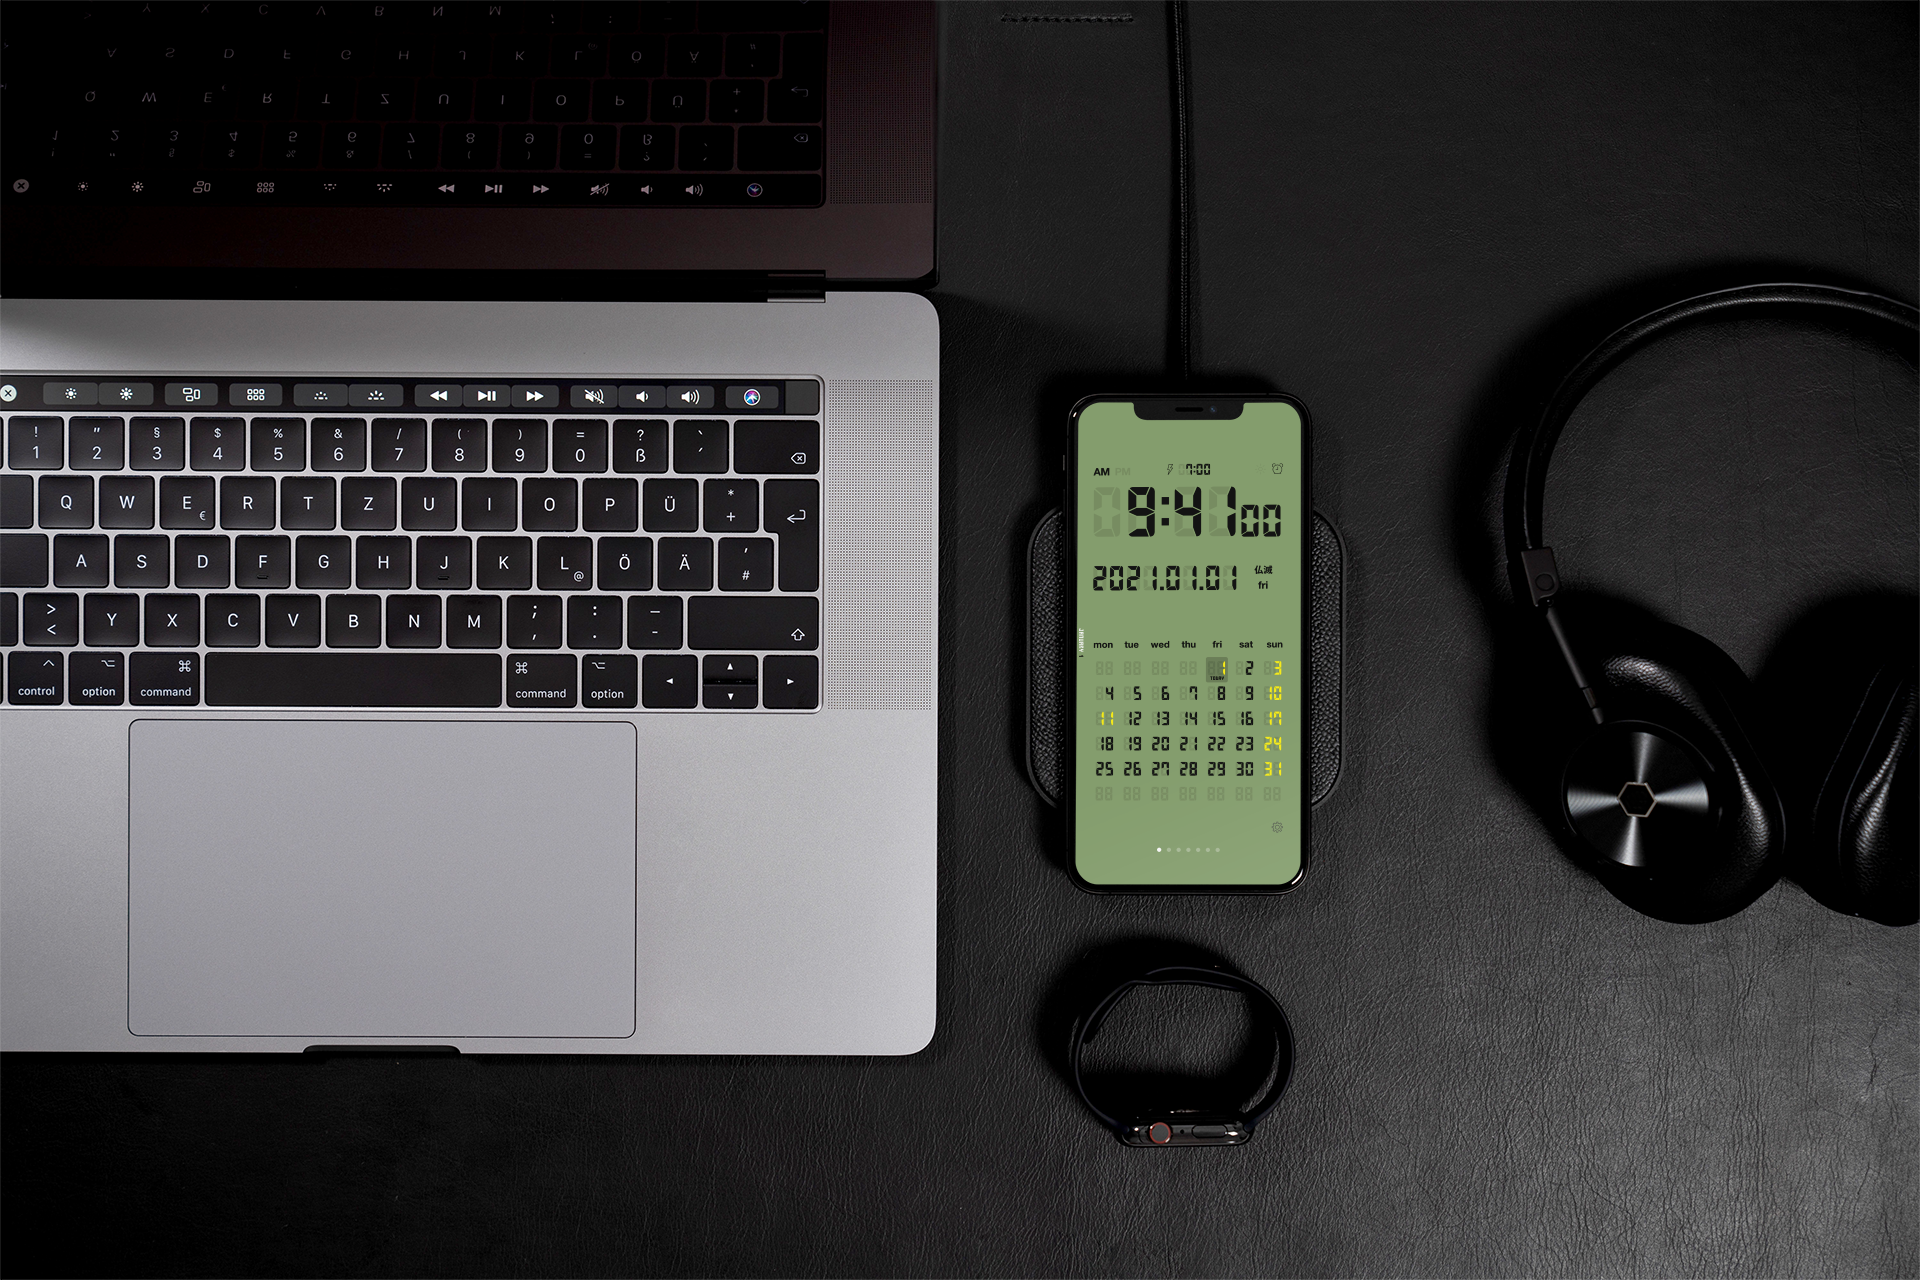 mockup-of-an-iphone-11-pro-placed-on-a-wireless-charger-3838-el1-1